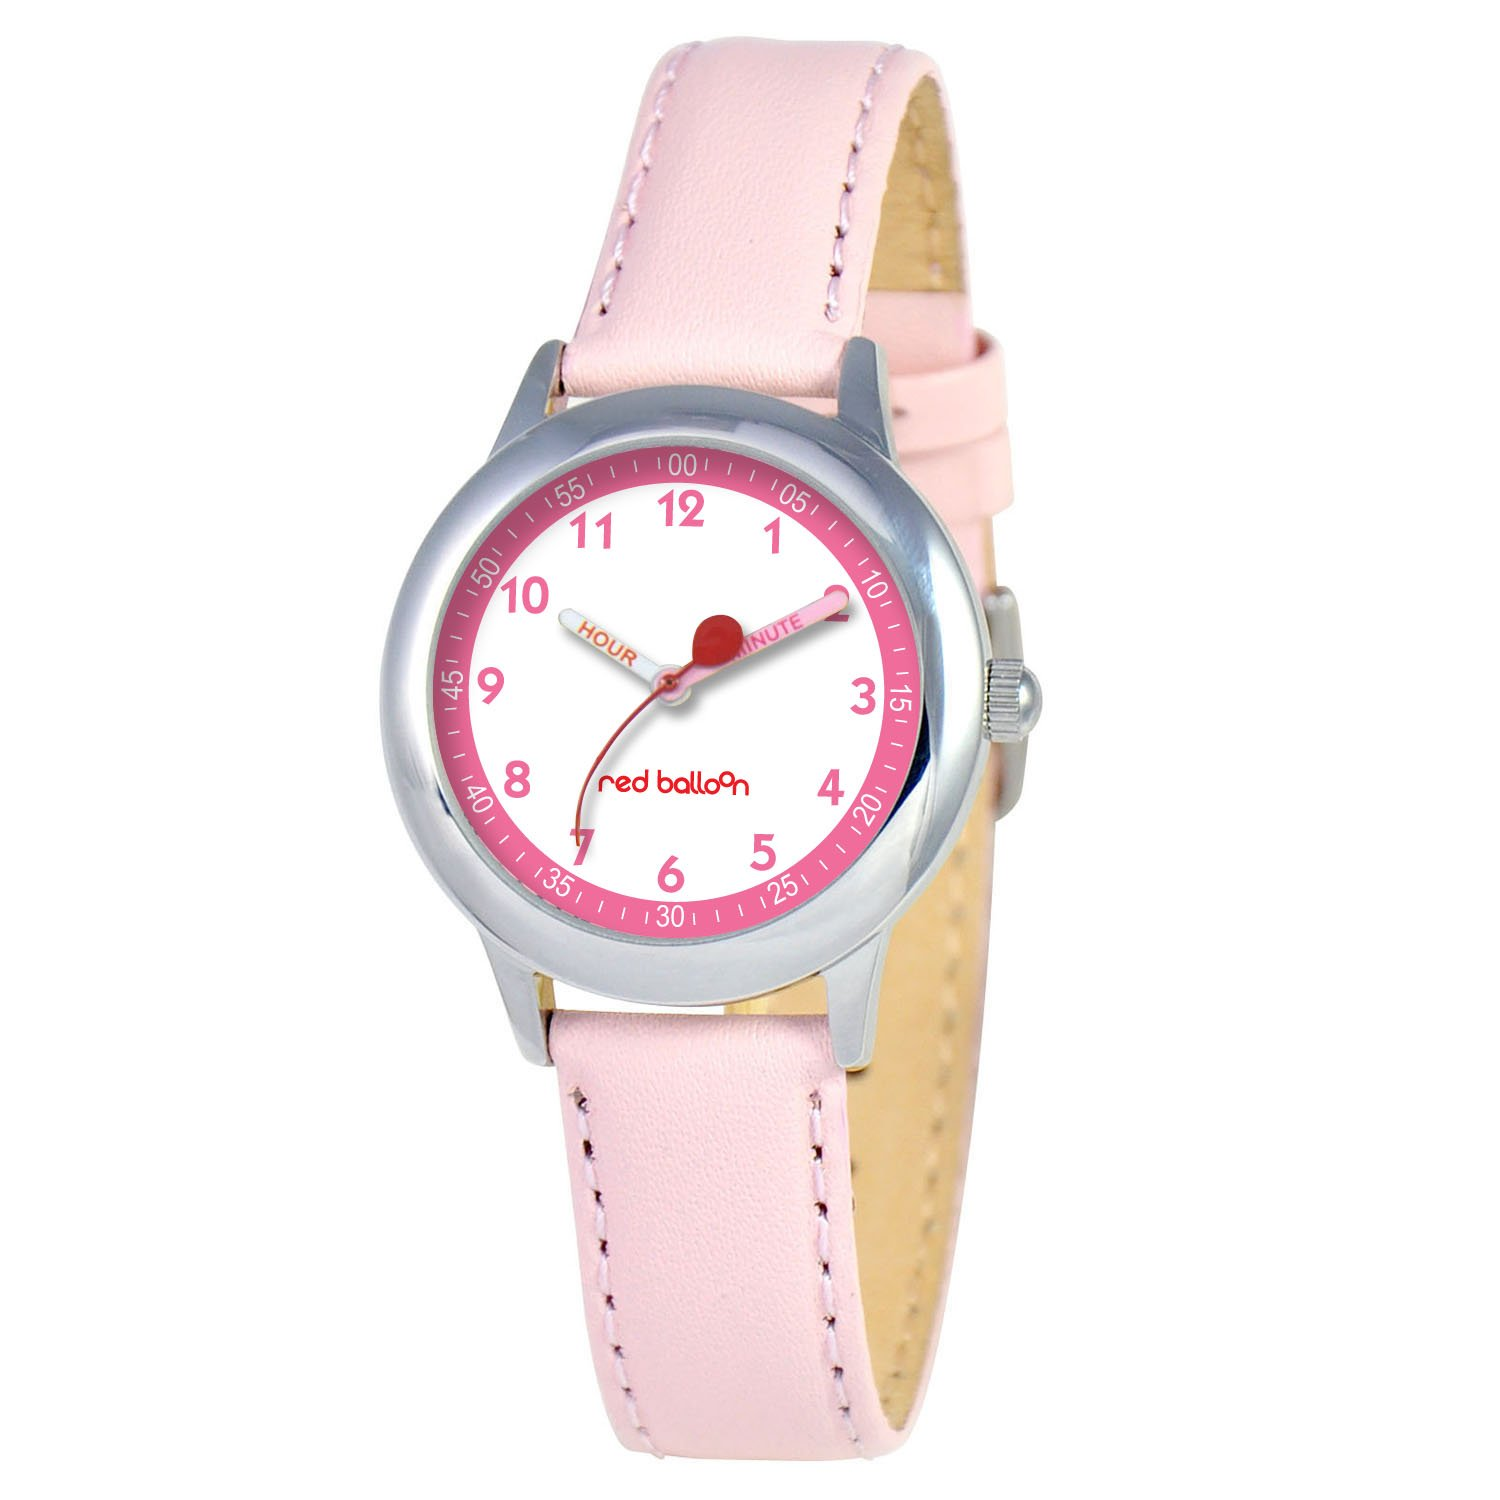 Red Balloon Kids' W000196 Stainless Steel Watch with Leather Band by Red Balloon